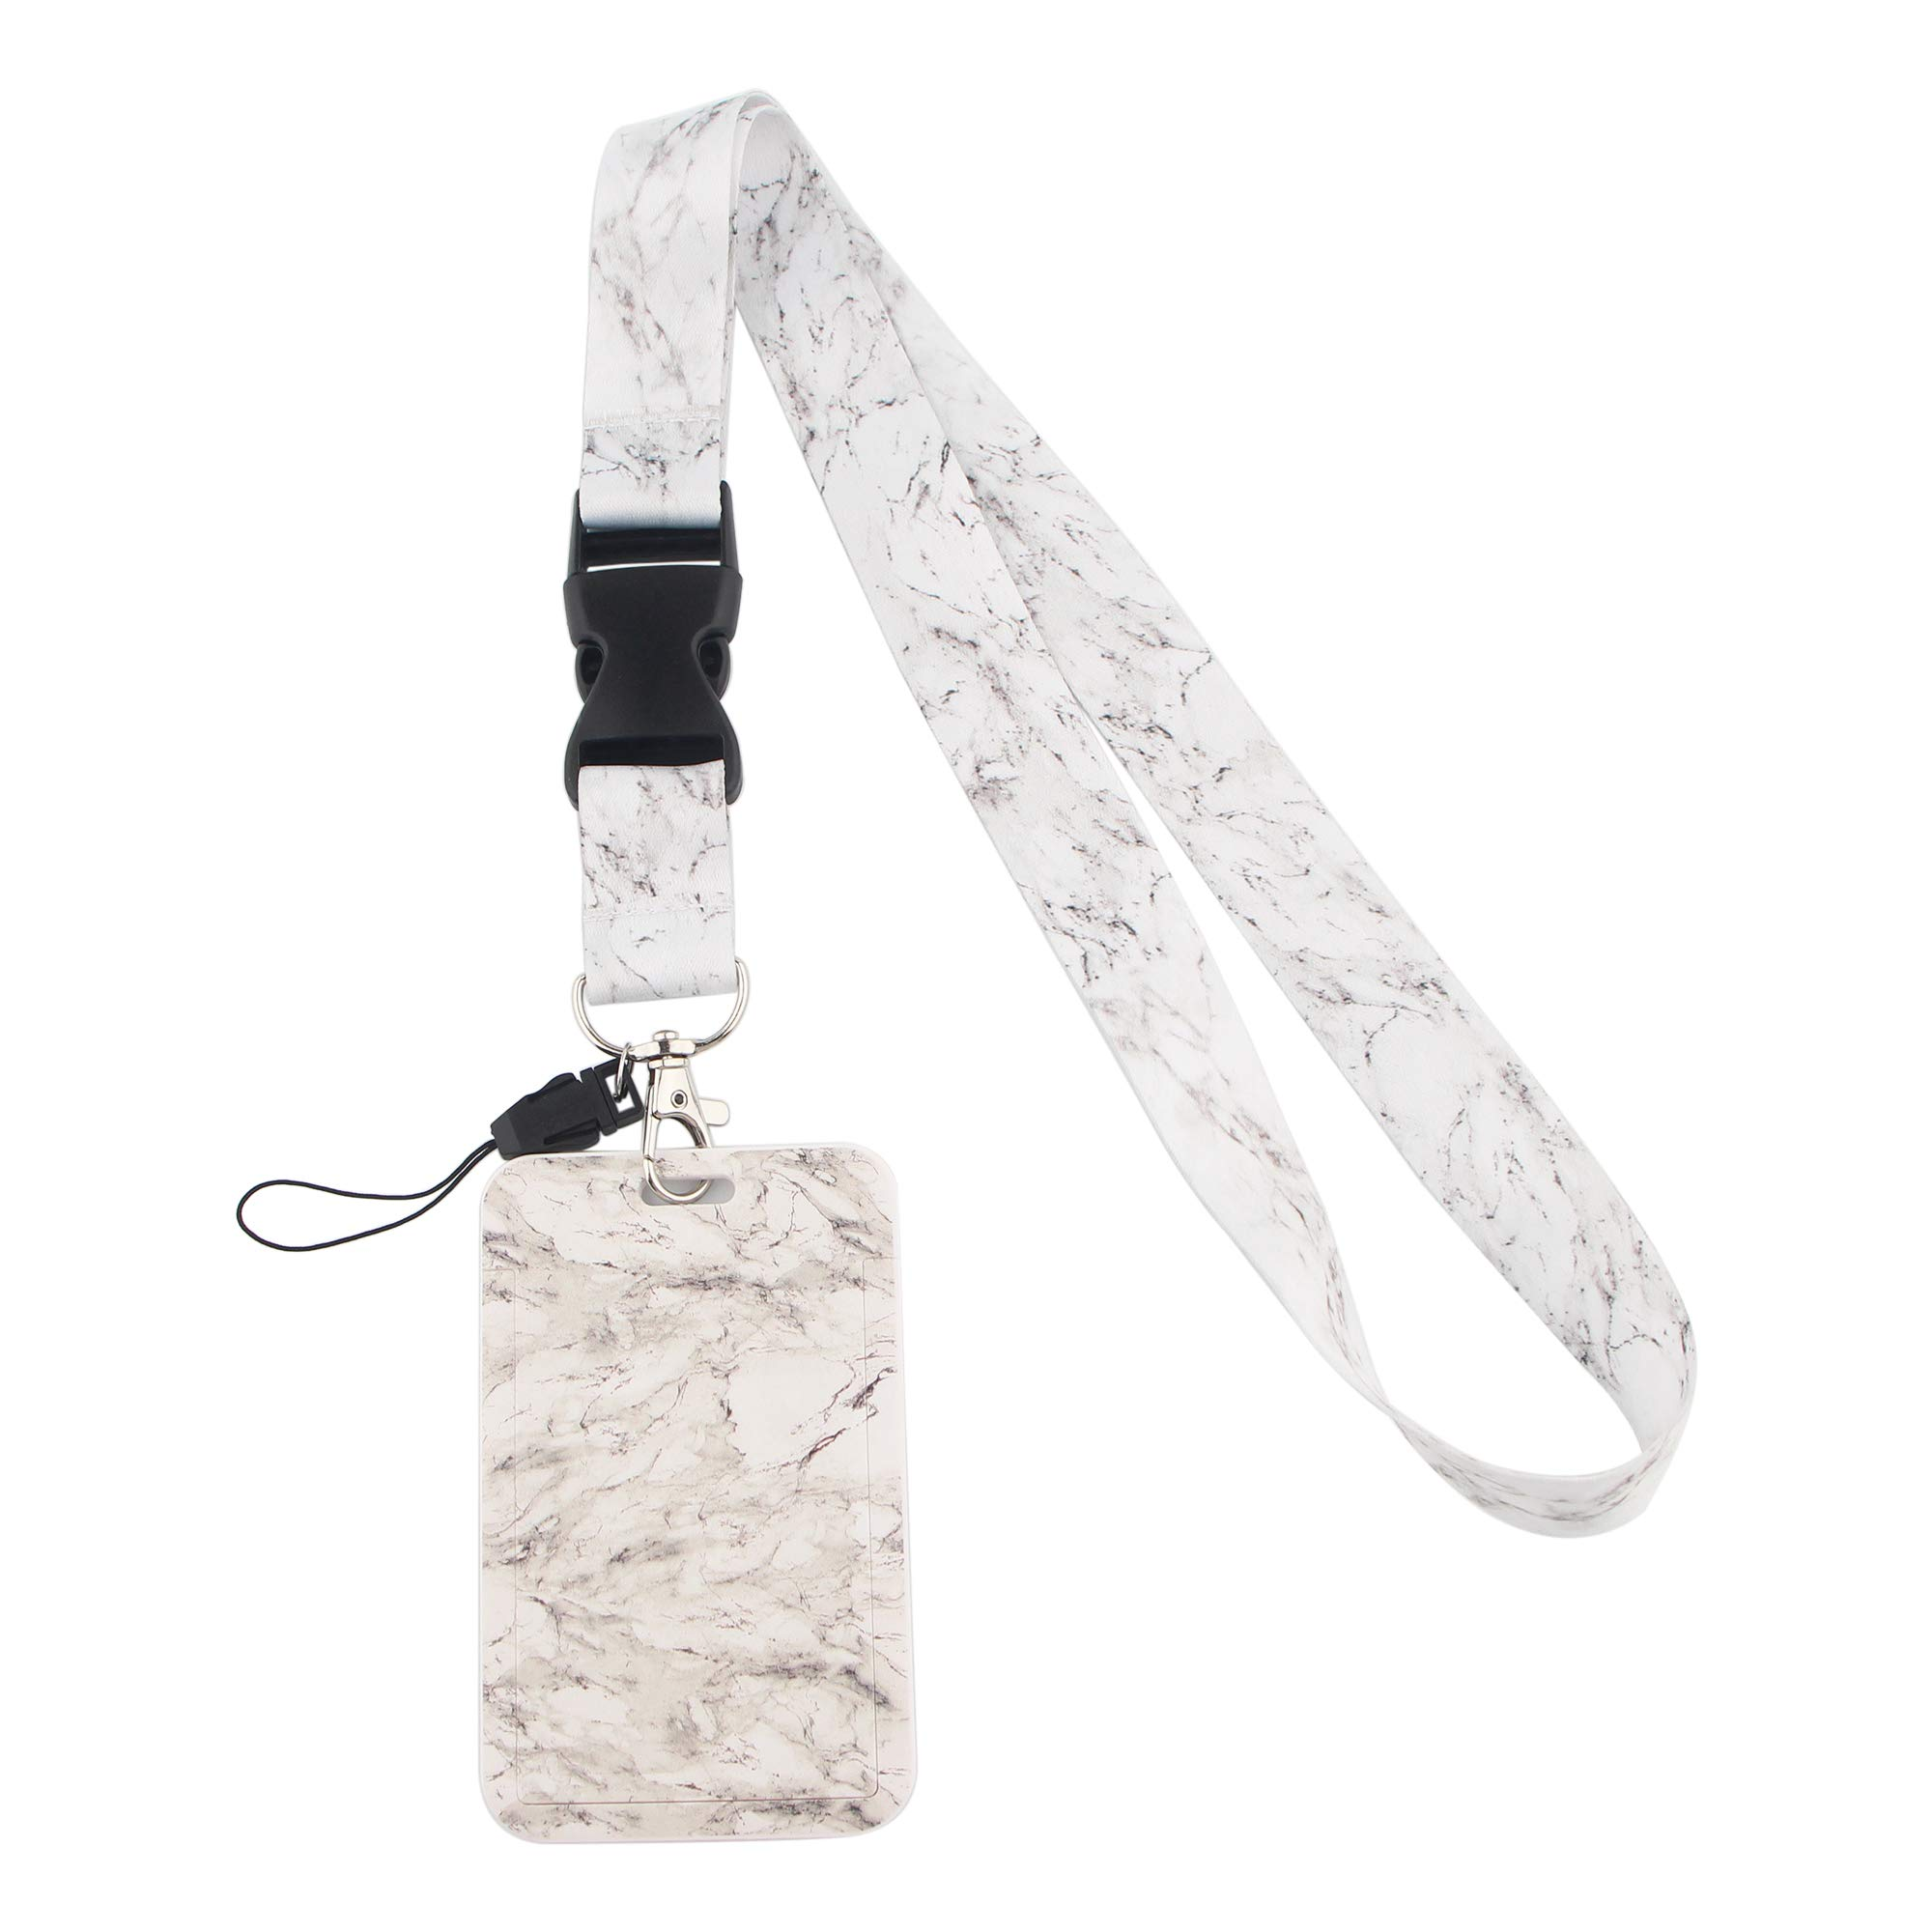 Detachable Lanyard for ID Badges White Marble with Charm Heavy Duty Card Holder, Vertical Plastic Name Tag Work Permit Card